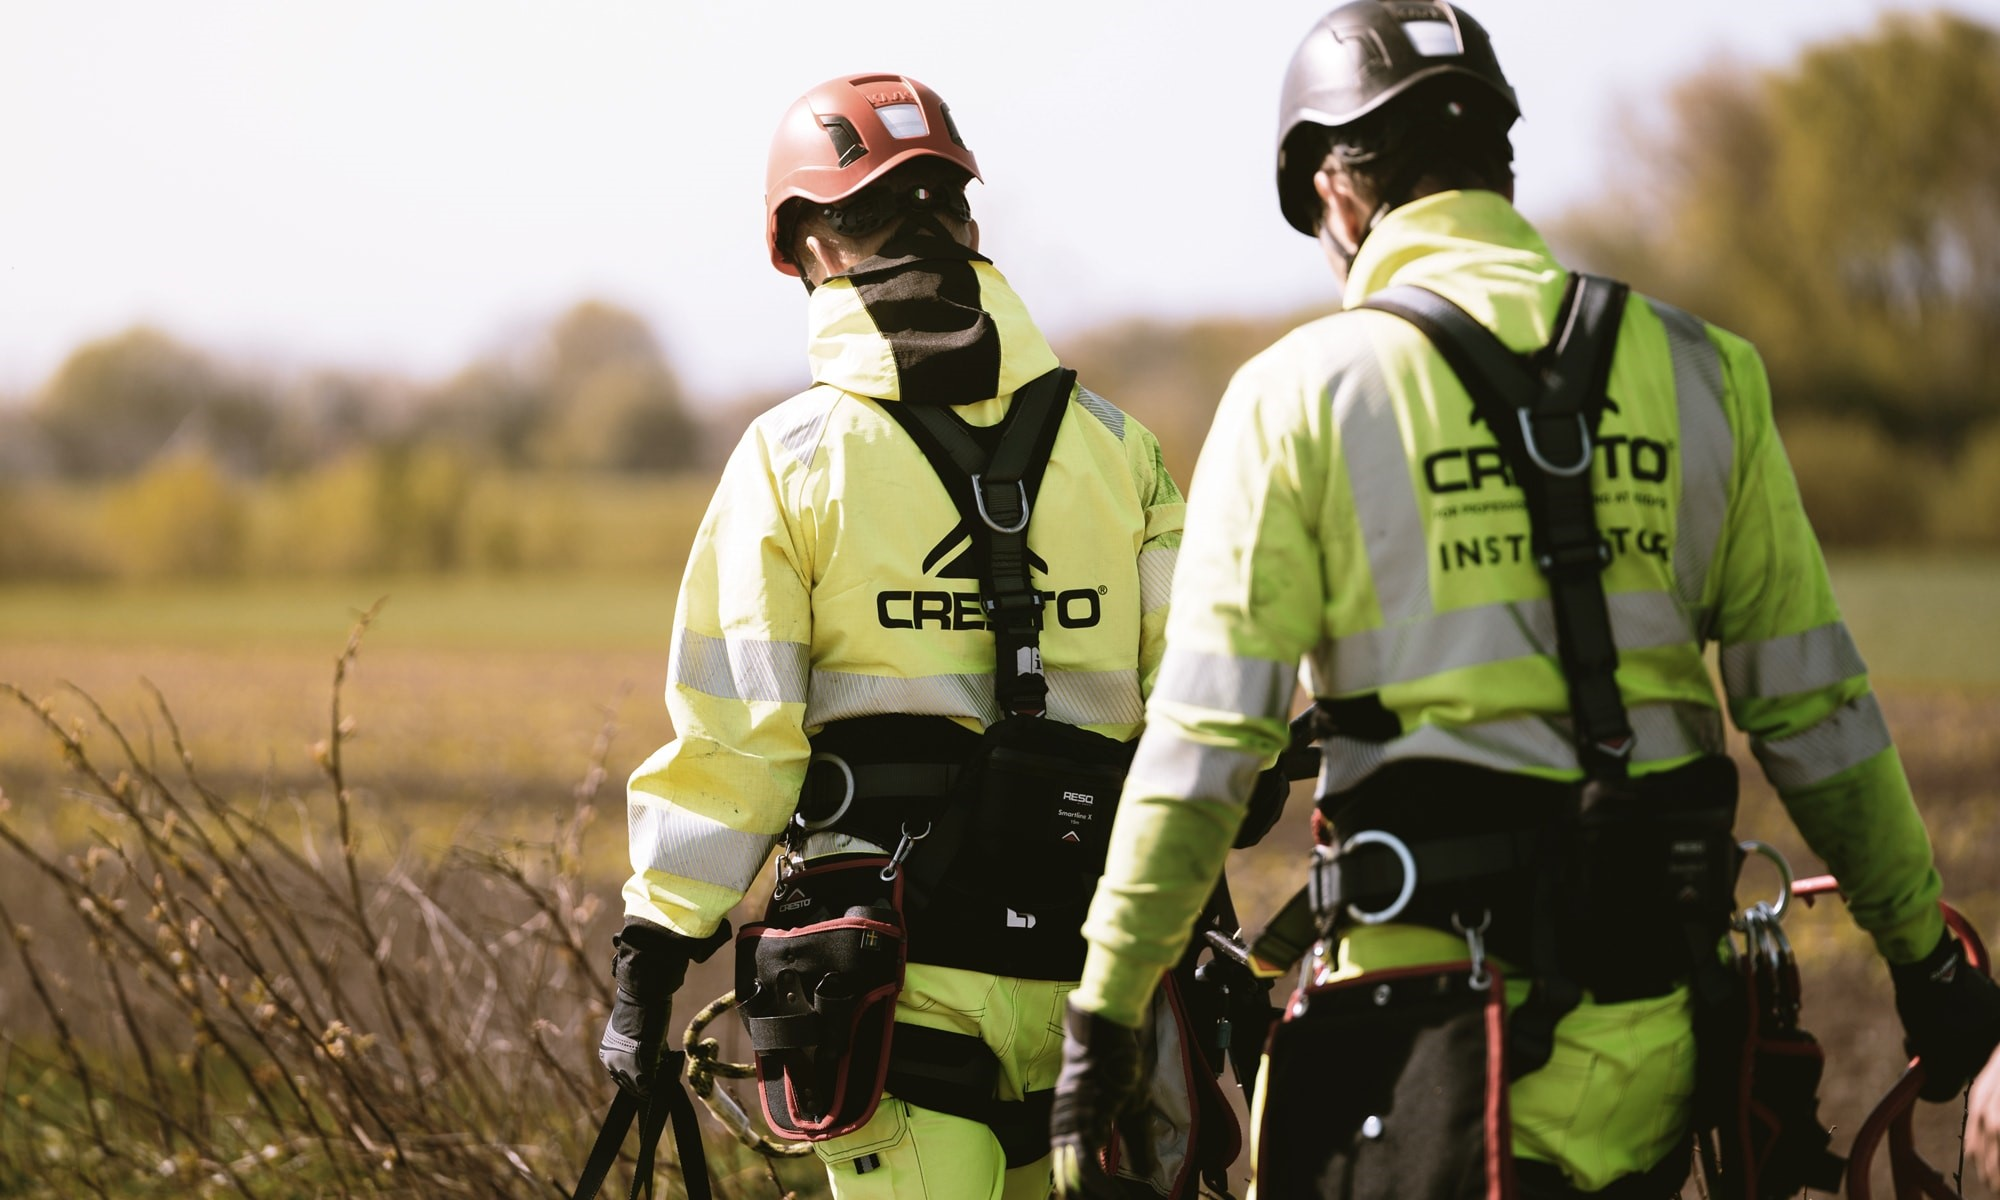 Two workers in high visibility clothes